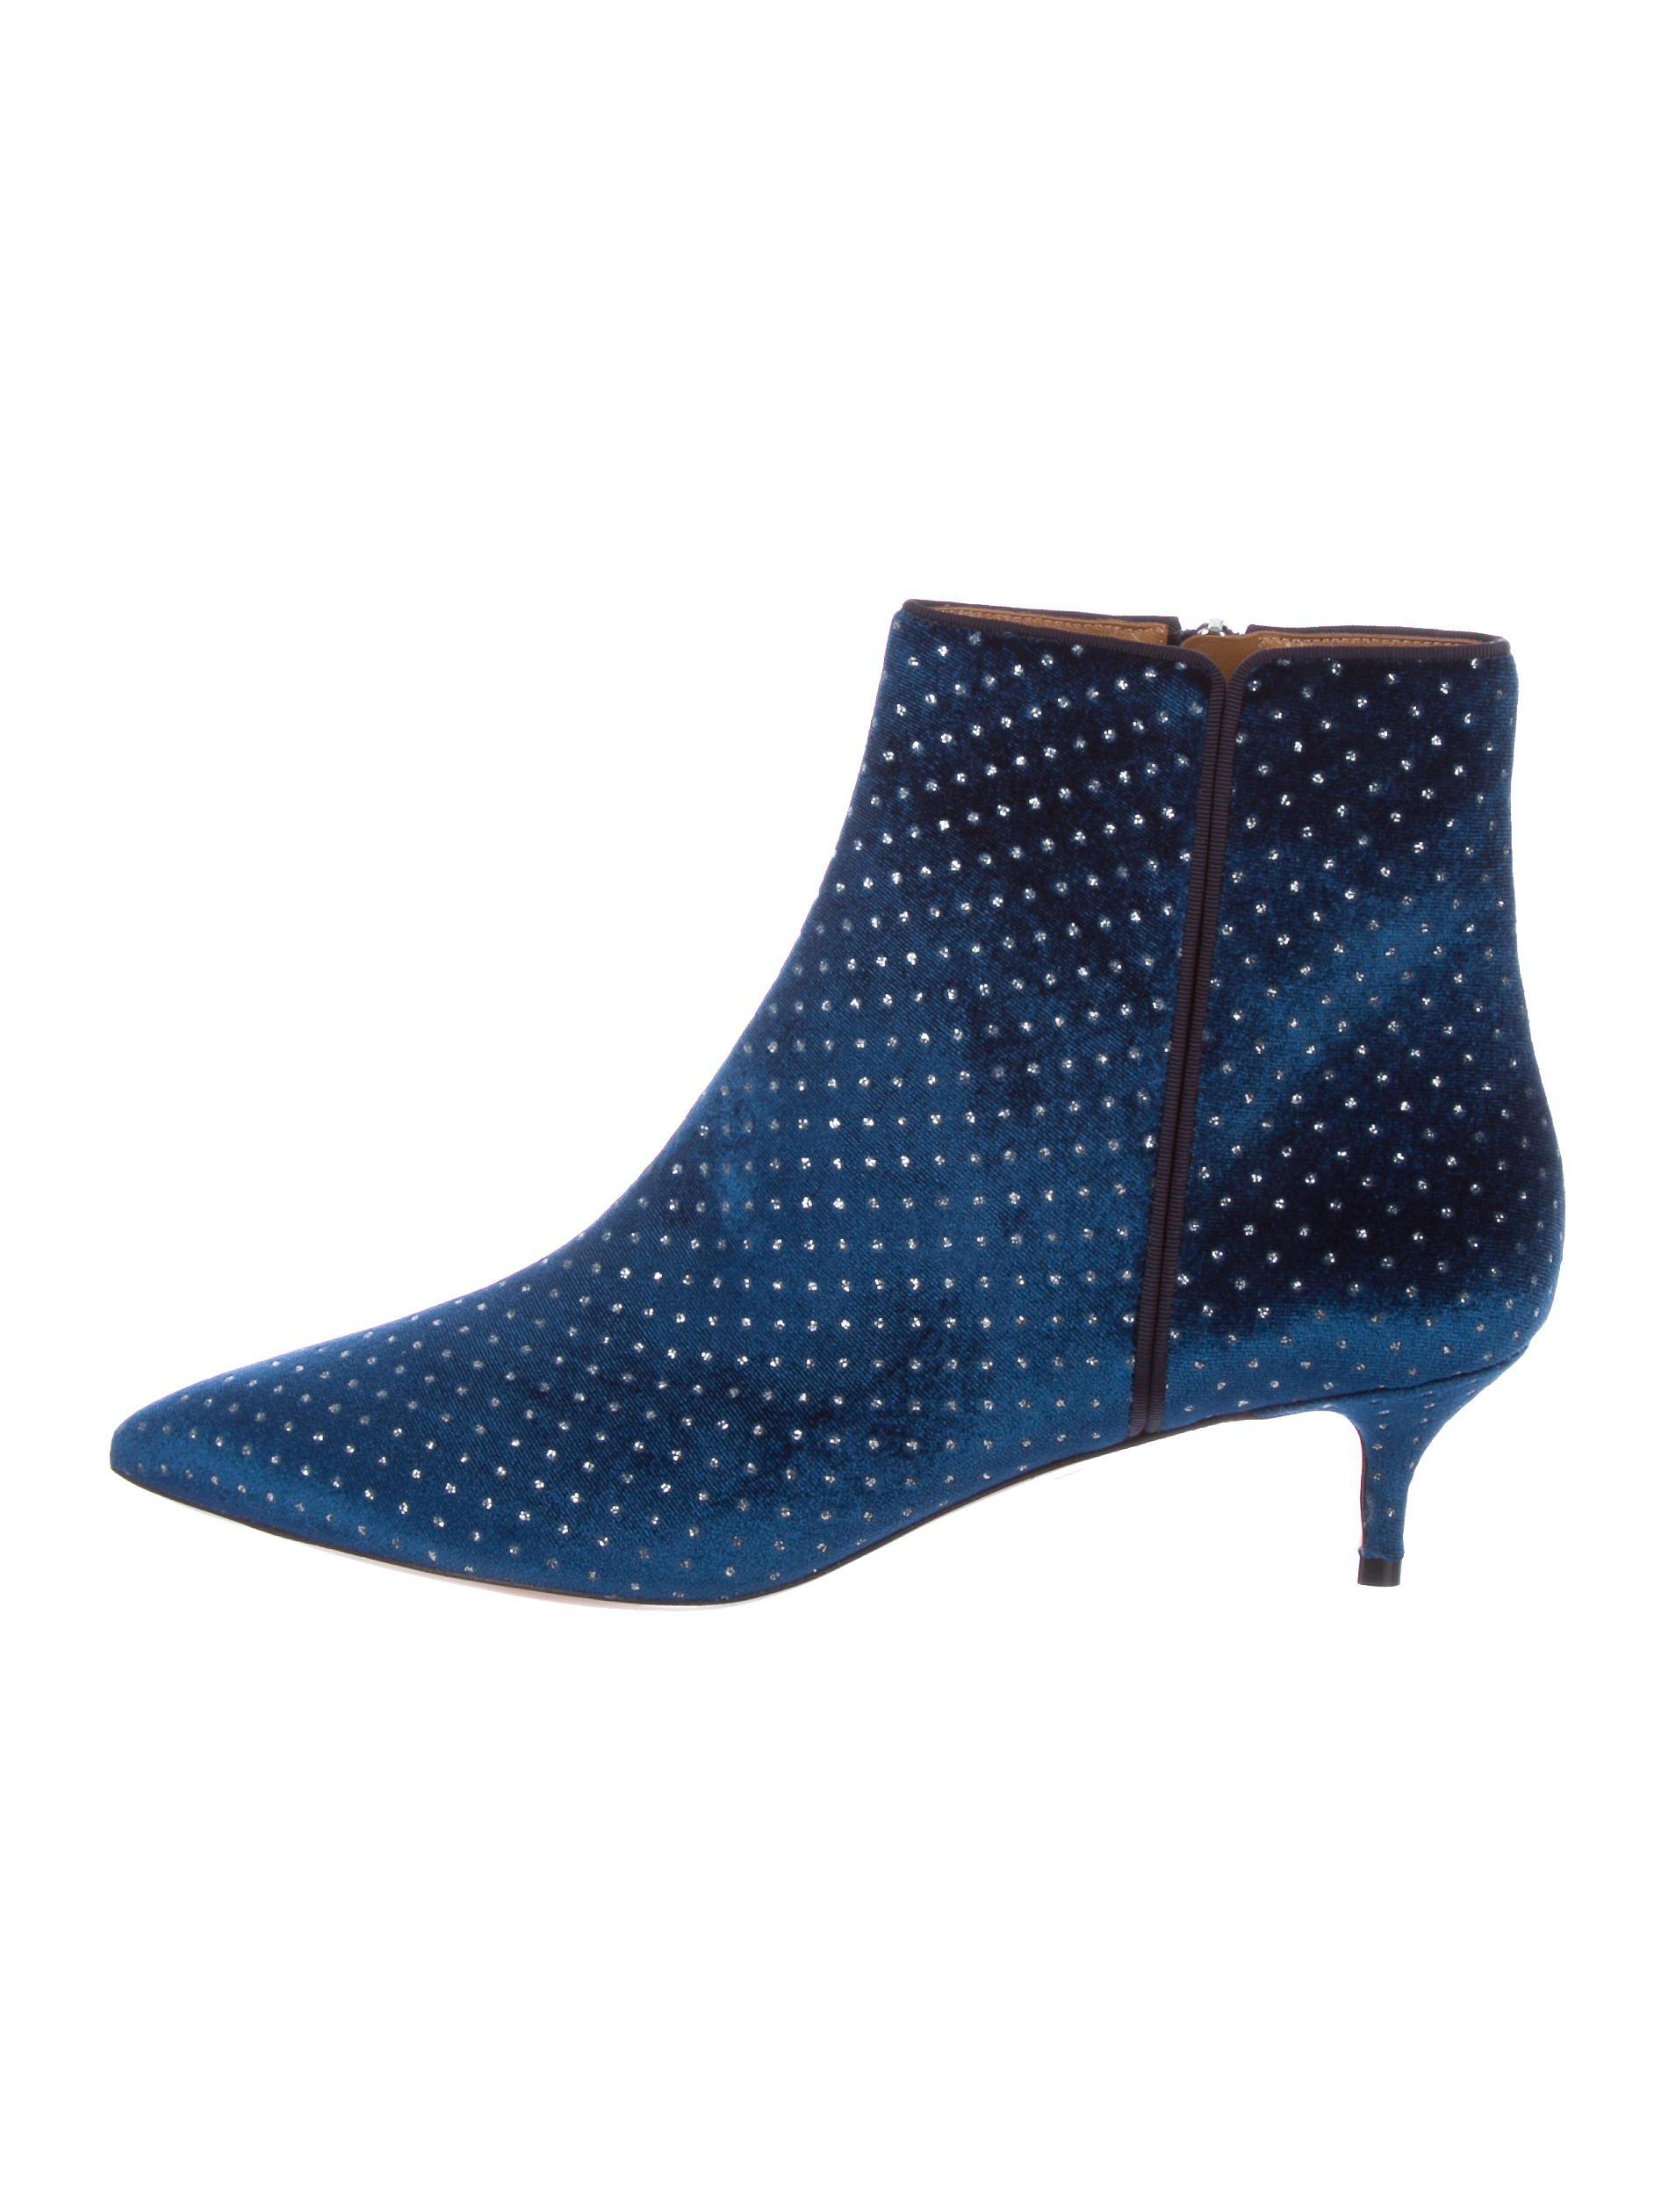 shopping online outlet sale Aquazzura Quant Embellished Booties w/ Tags clearance classic comfortable online good selling cheap price HWA1CD3